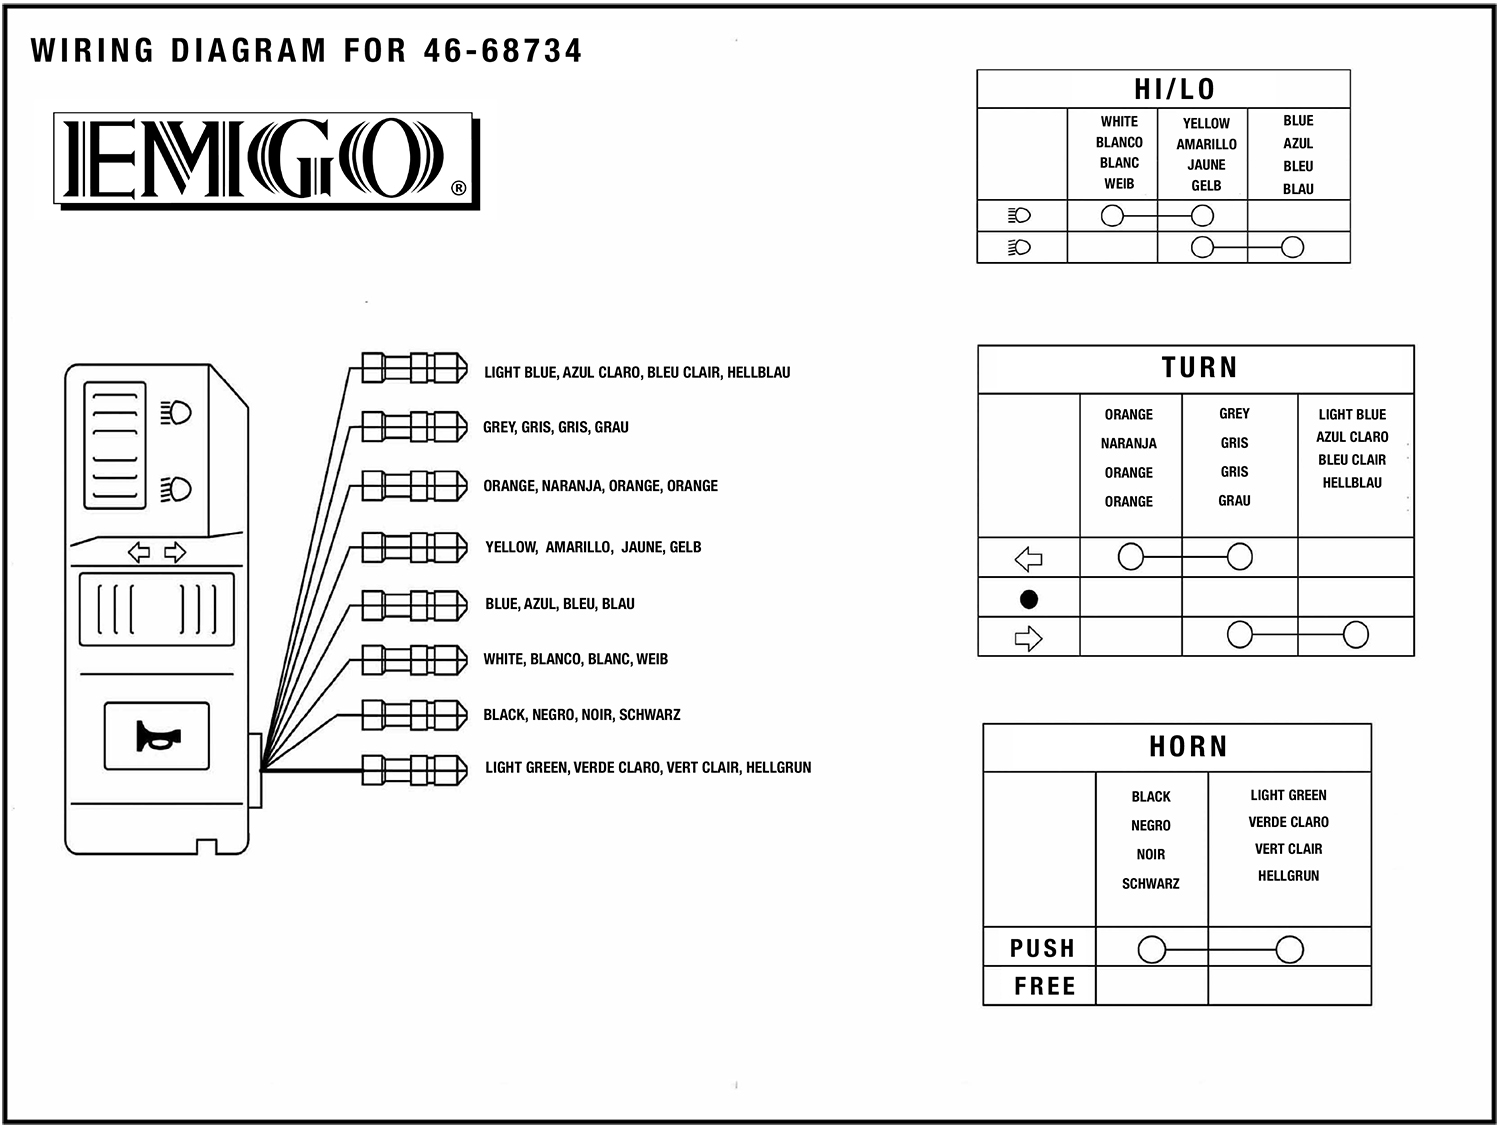 46 68734 wiring diagram left emgo schematic pin out handlebar multi switch motorcycle?t=1490389479 emgo universal handlebar multi switch left 46 68734 wiring cb450sc wiring diagram at creativeand.co